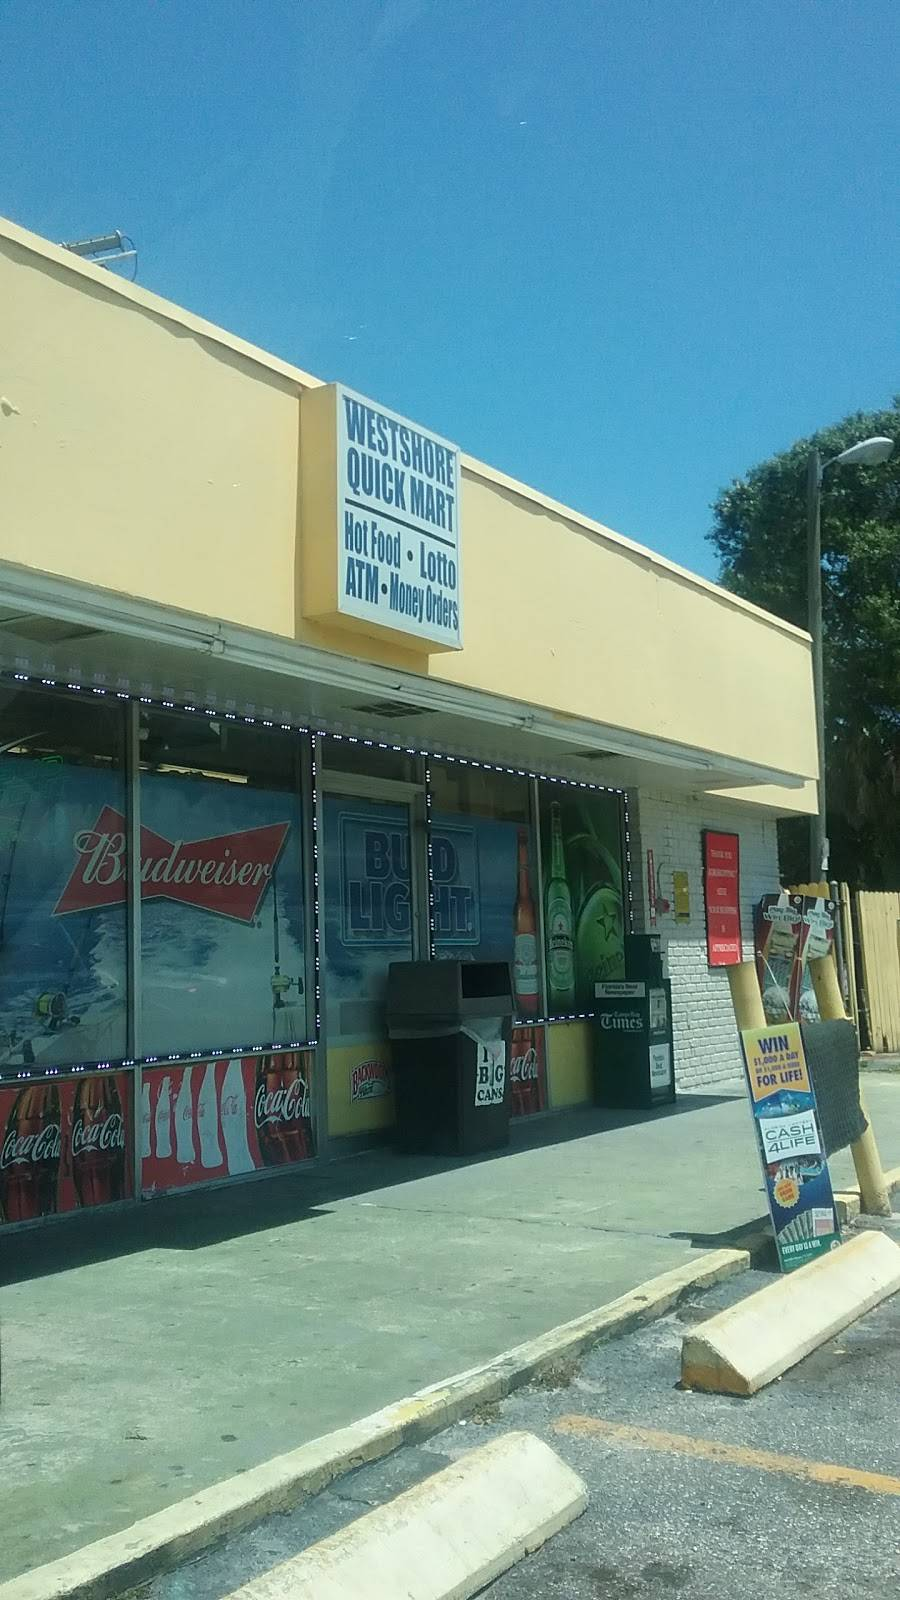 Westshore Quick Mart - convenience store  | Photo 1 of 5 | Address: 6802 S West Shore Blvd, Tampa, FL 33616, USA | Phone: (813) 805-6535